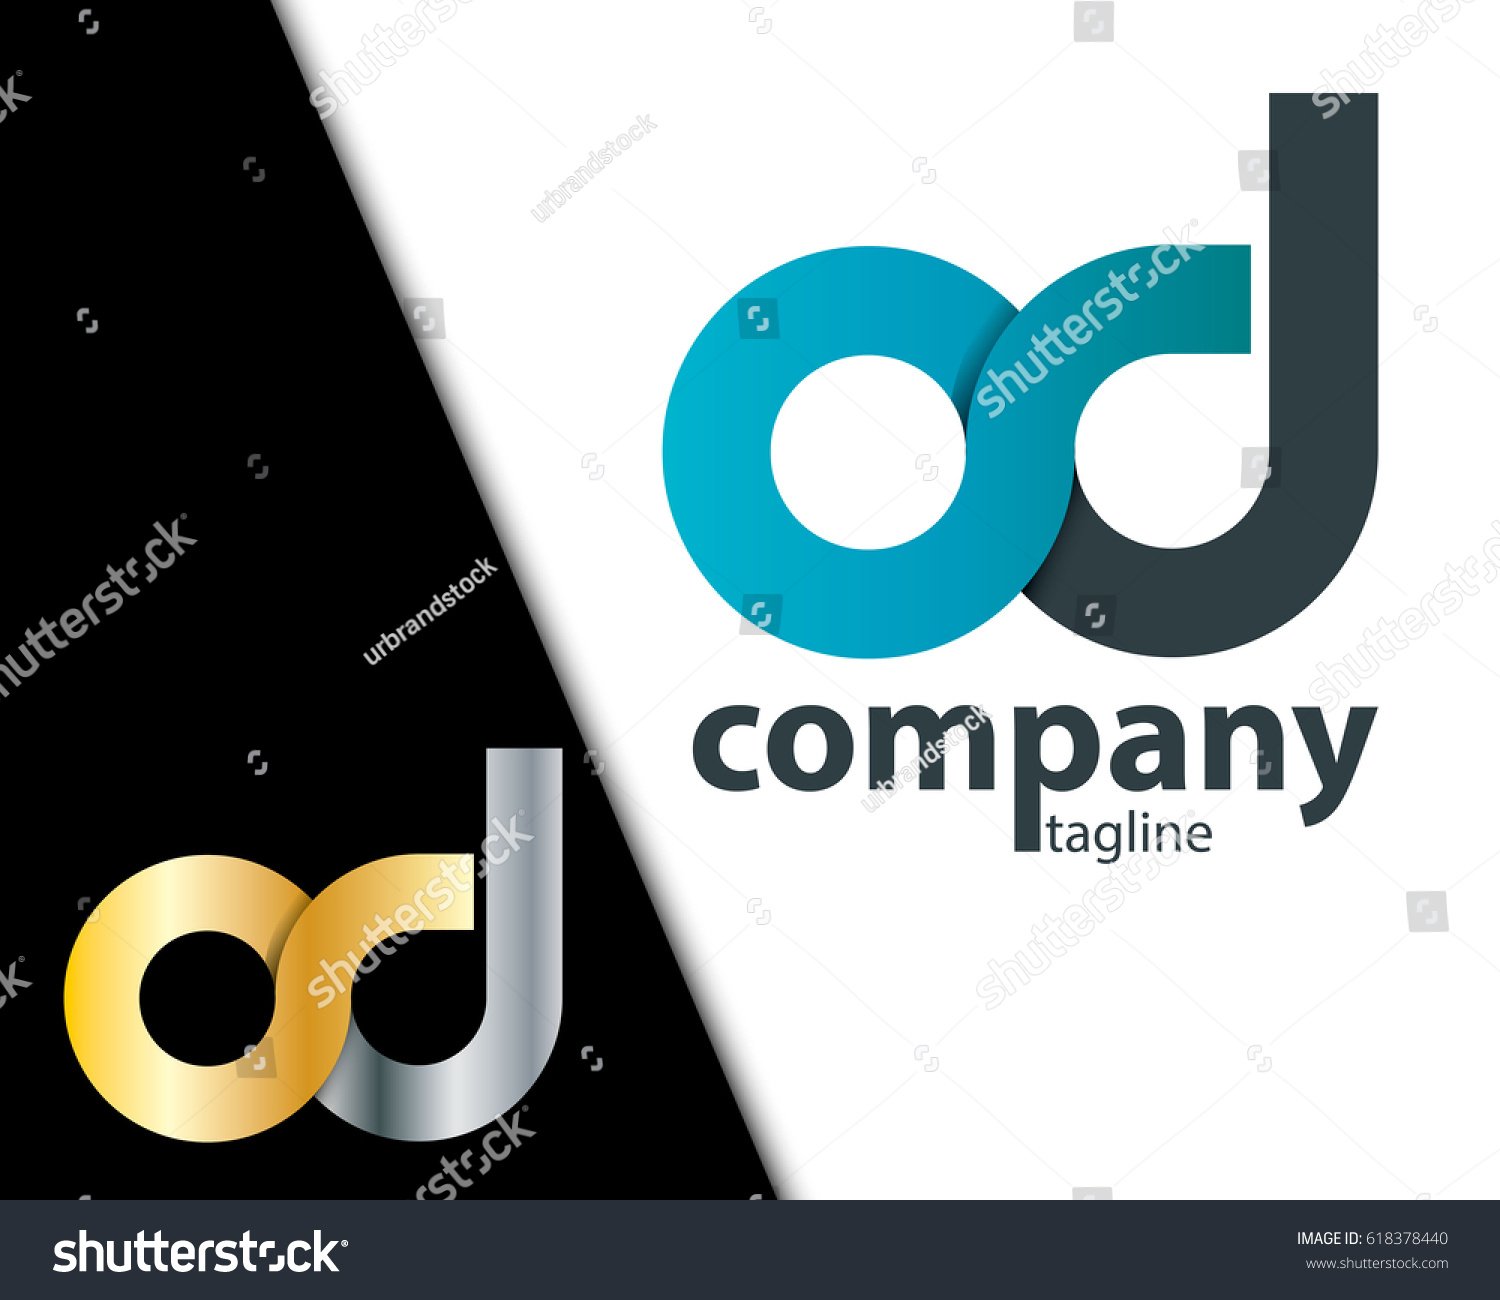 Side Letter Agreement Template - Side Letter Agreement Sample Awesome Initial Letter Od Cd Sd Rounded